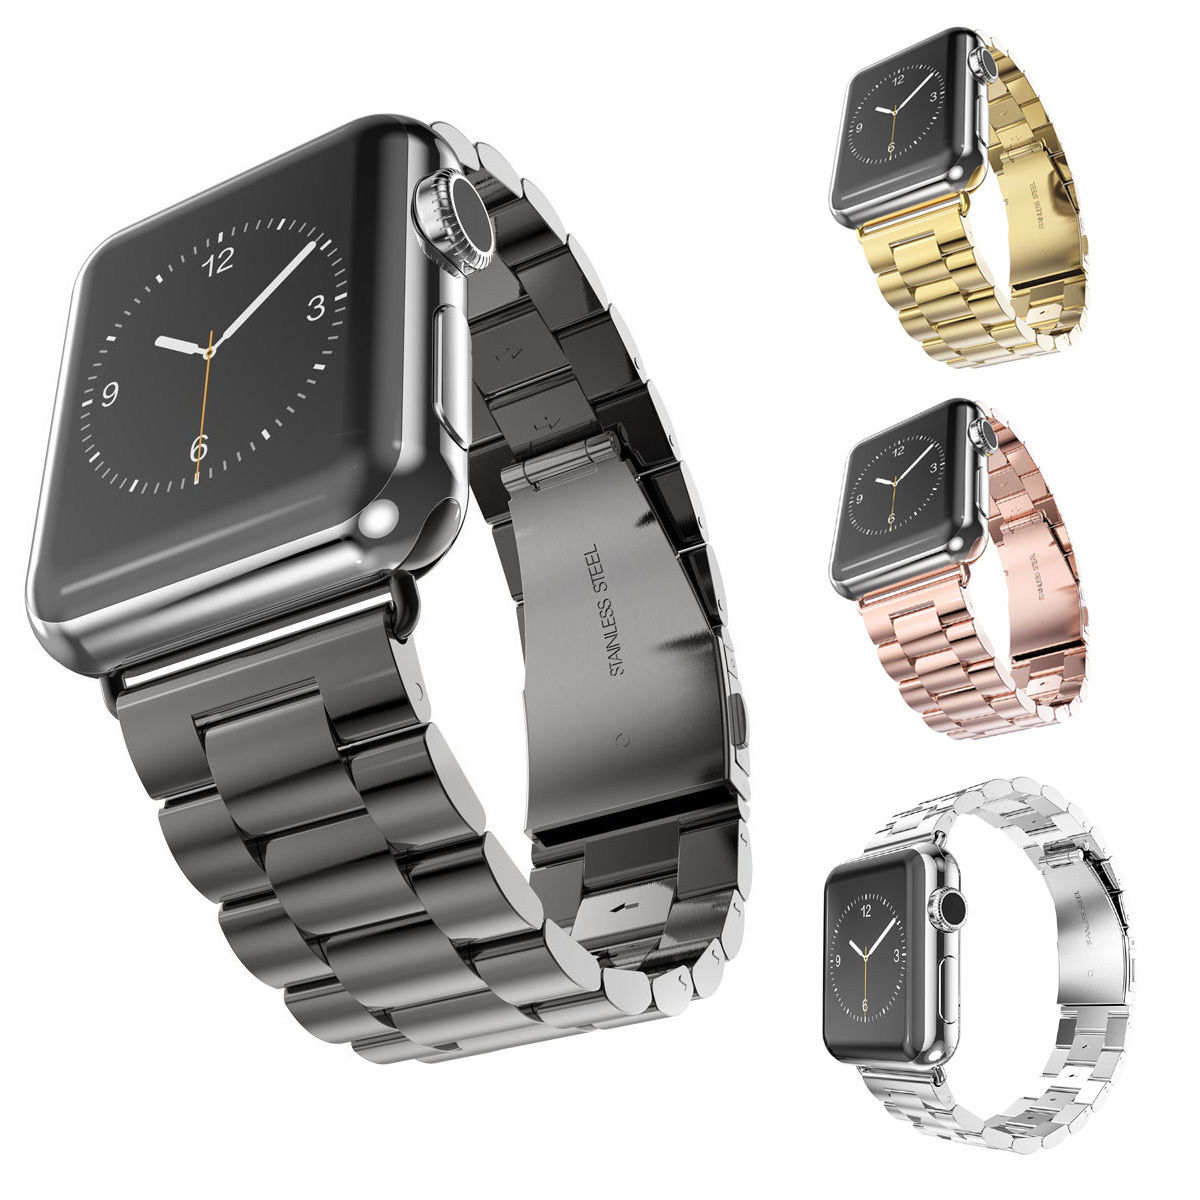 Stainless Steel Watch Band For iWatch Apple Watch Band ...